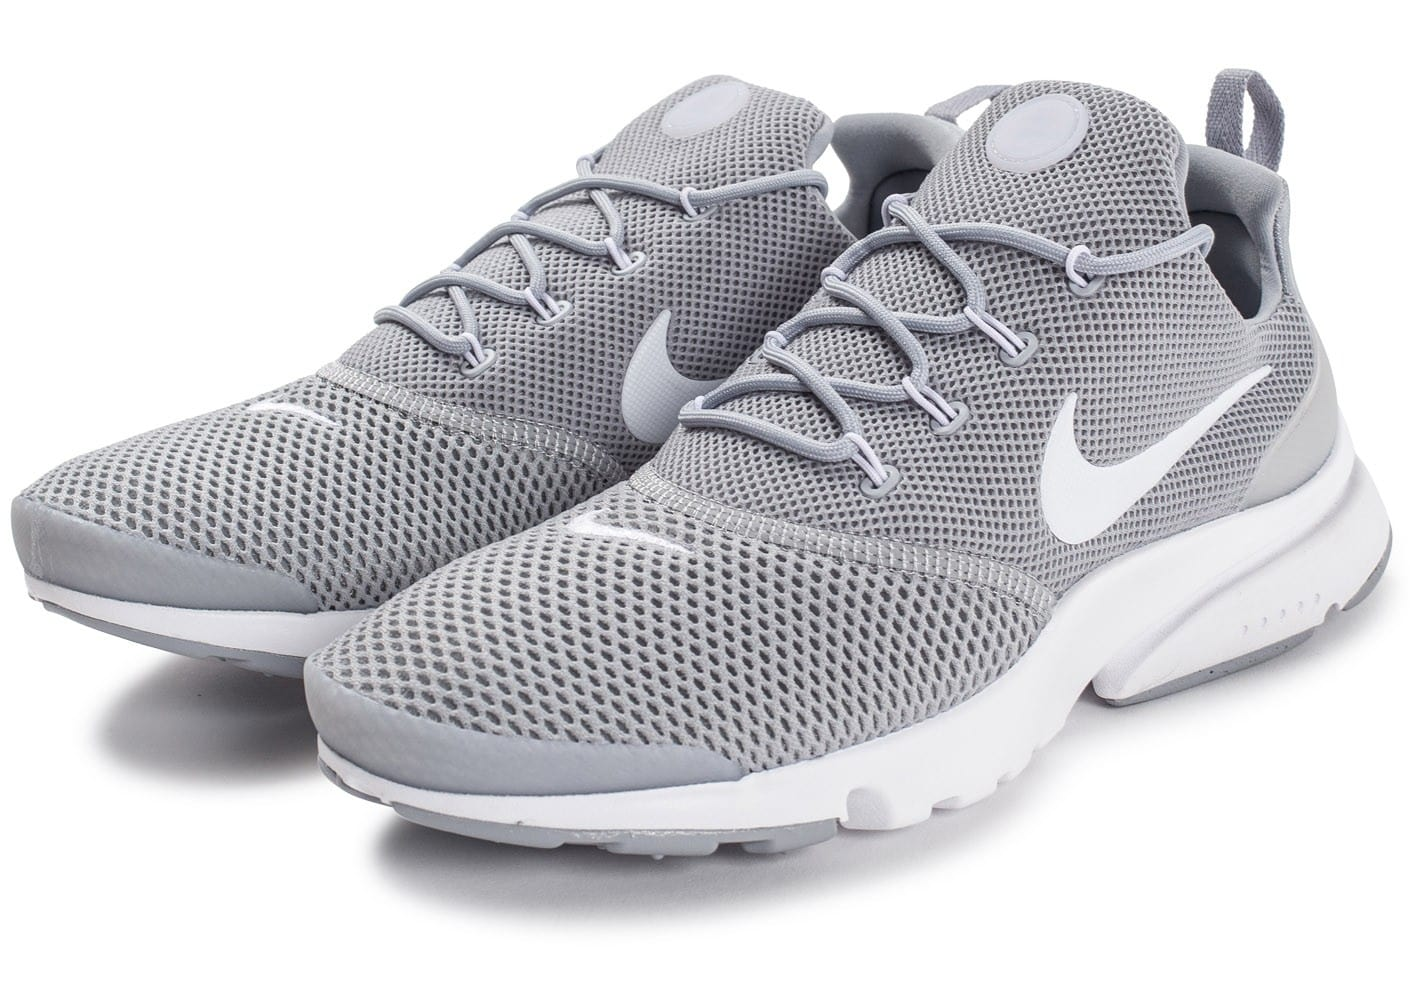 Homme Presto Nike Baskets Grise Chausport Fly Chaussures T1cKFJl